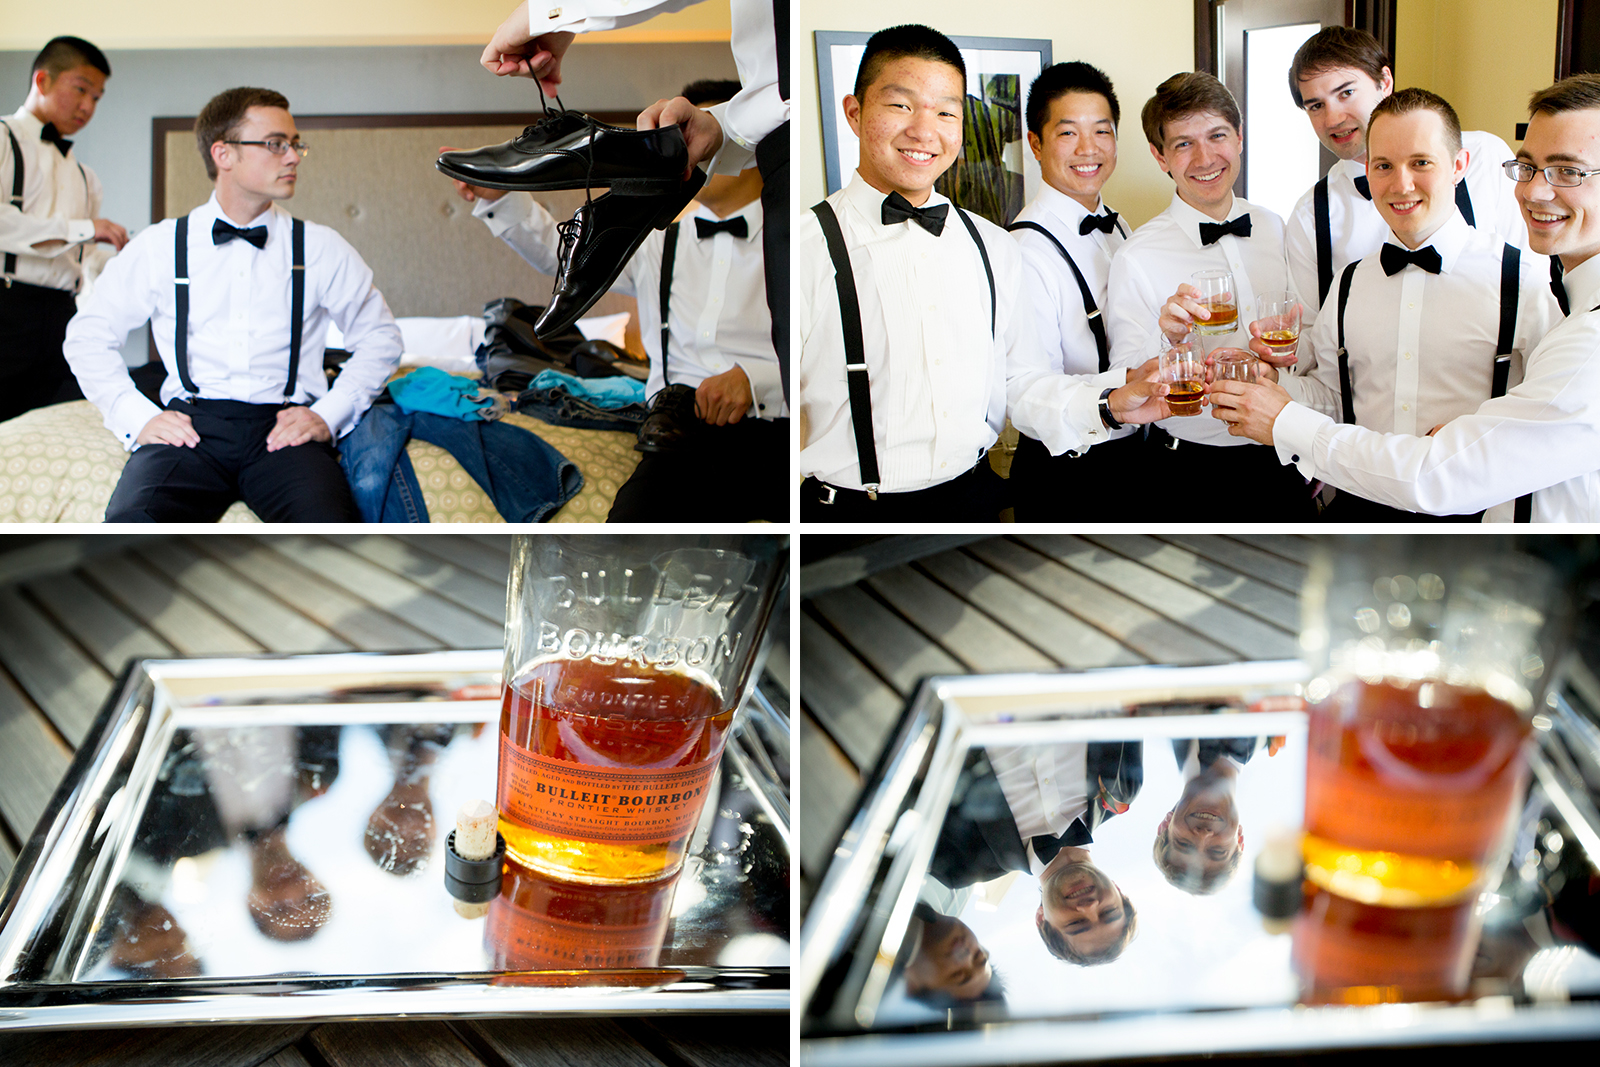 The groomsmen get ready and drink bourbon at the Washington Athletic Club (WAC) in Seattle prior to the start of the wedding at the Seattle Aquarium. (Wedding Photography by Scott Eklund - Red Box Pictures)